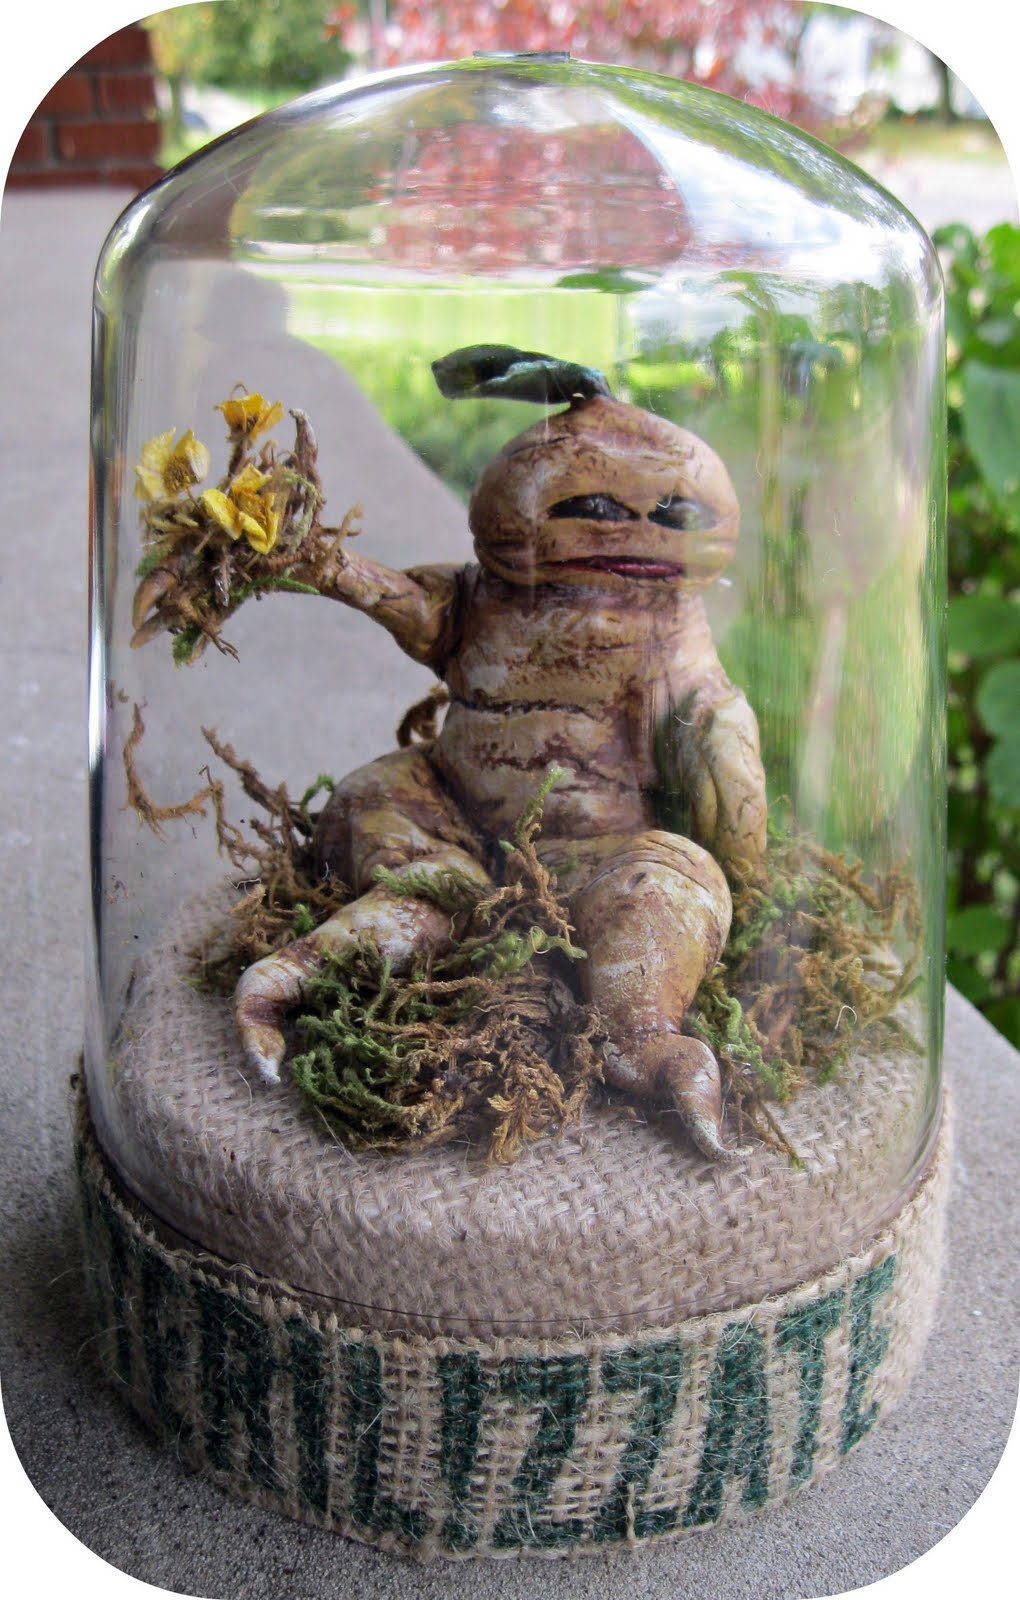 Make It With Me How To Make Pick A Mandrake Root And